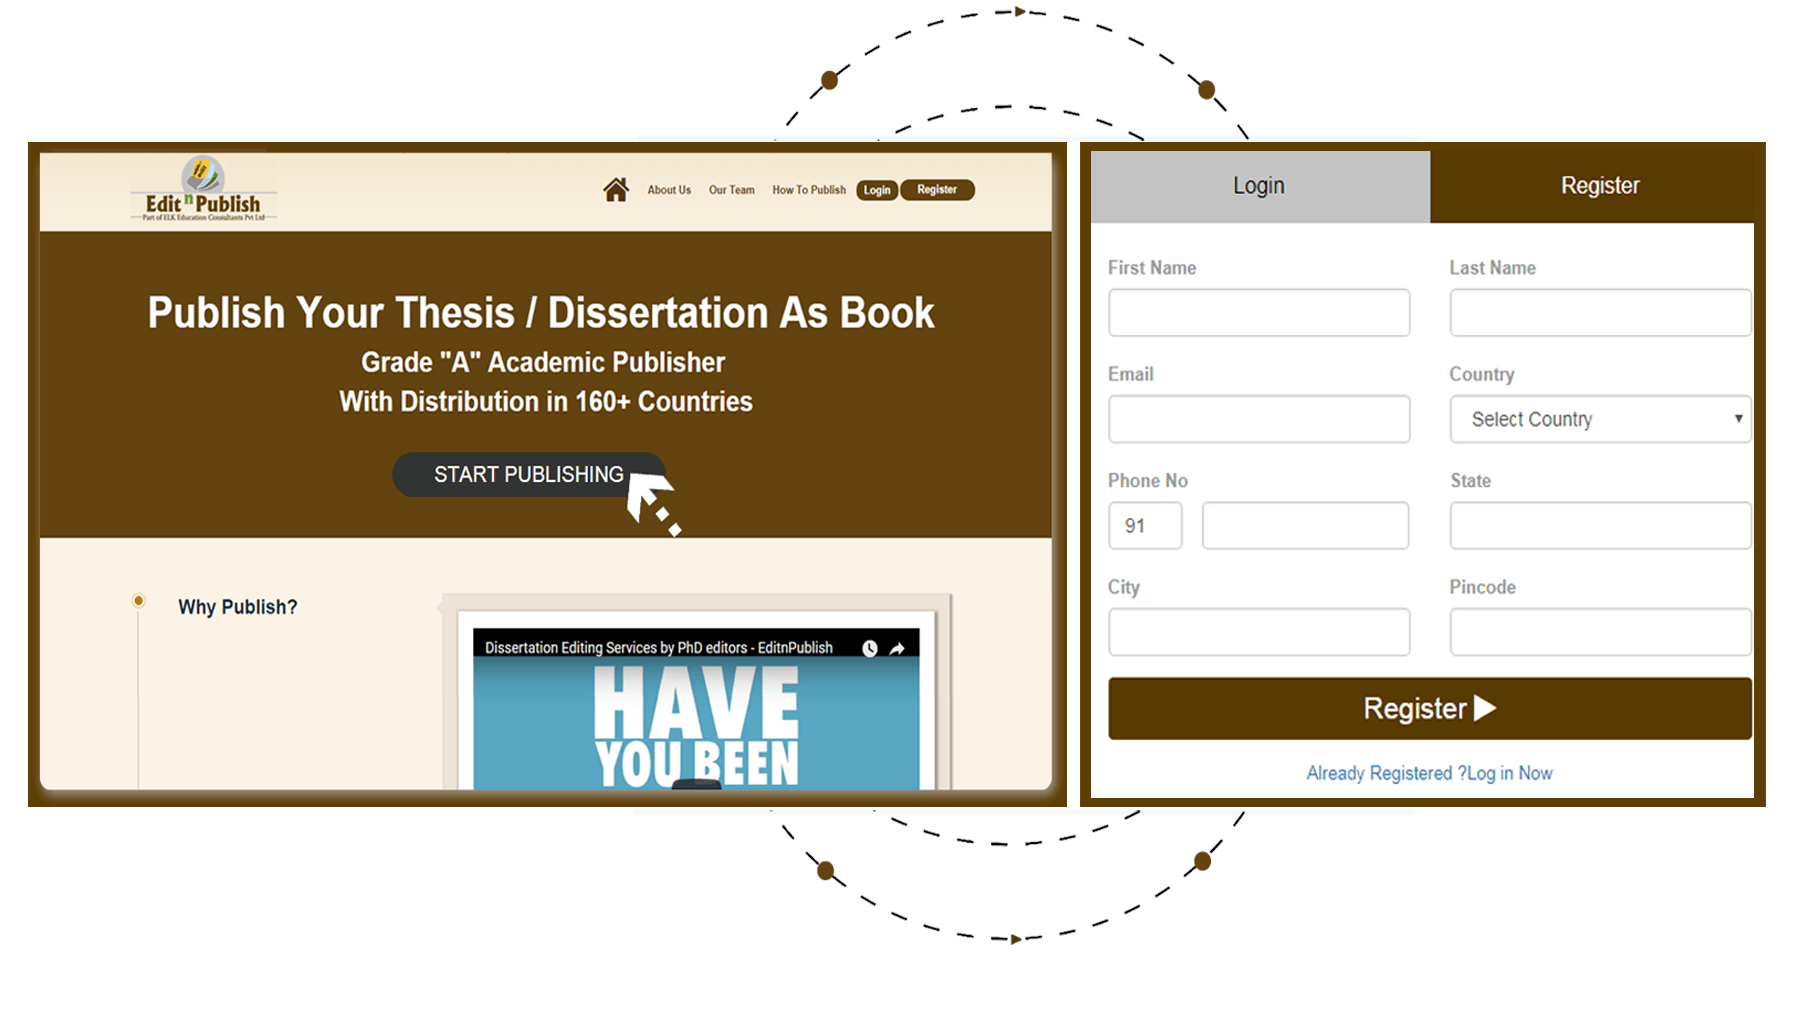 Breast augmentation research papers 6 score sat essay